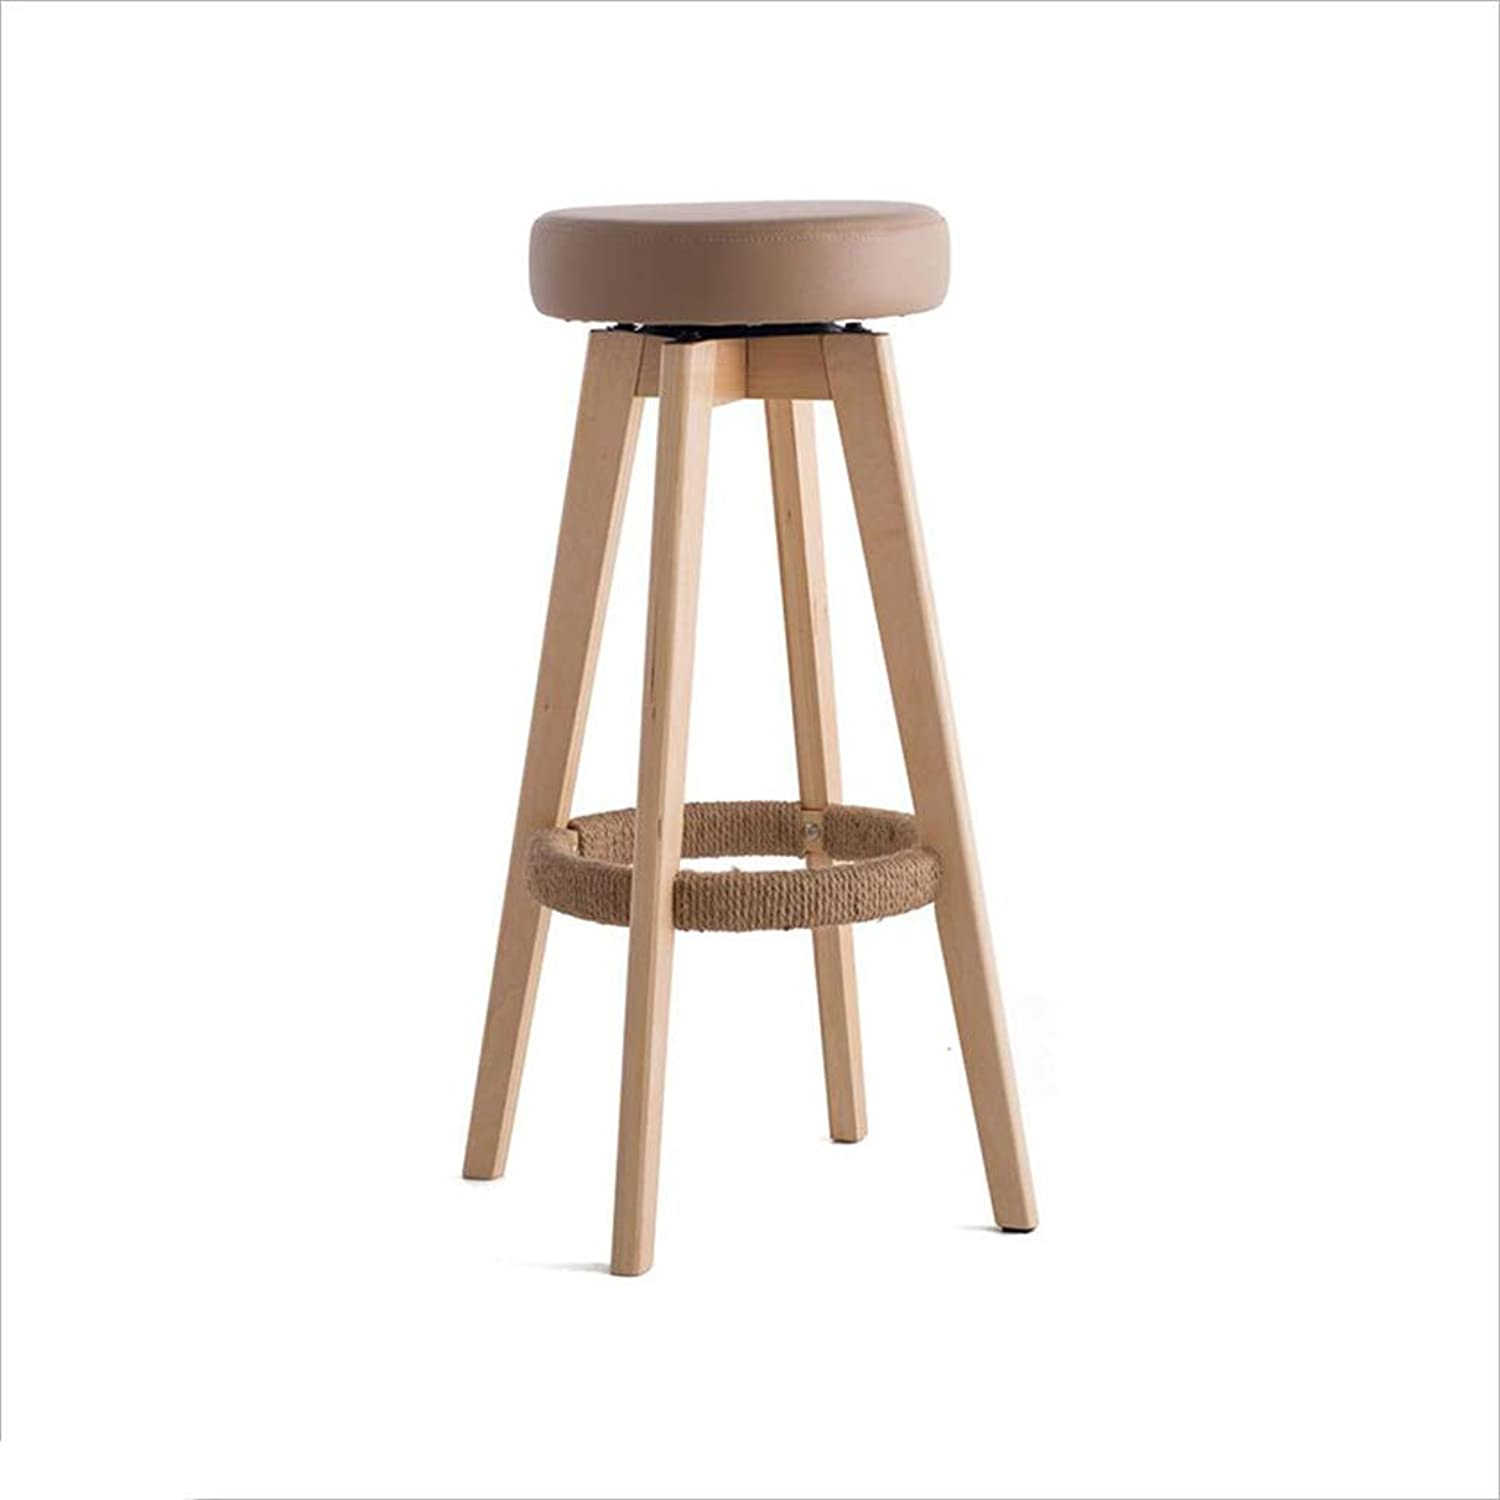 QZ HOME Bar Chair redating High Foot Stools Household Solid Wood Bar Stools Strong and Durable (color   Brown)